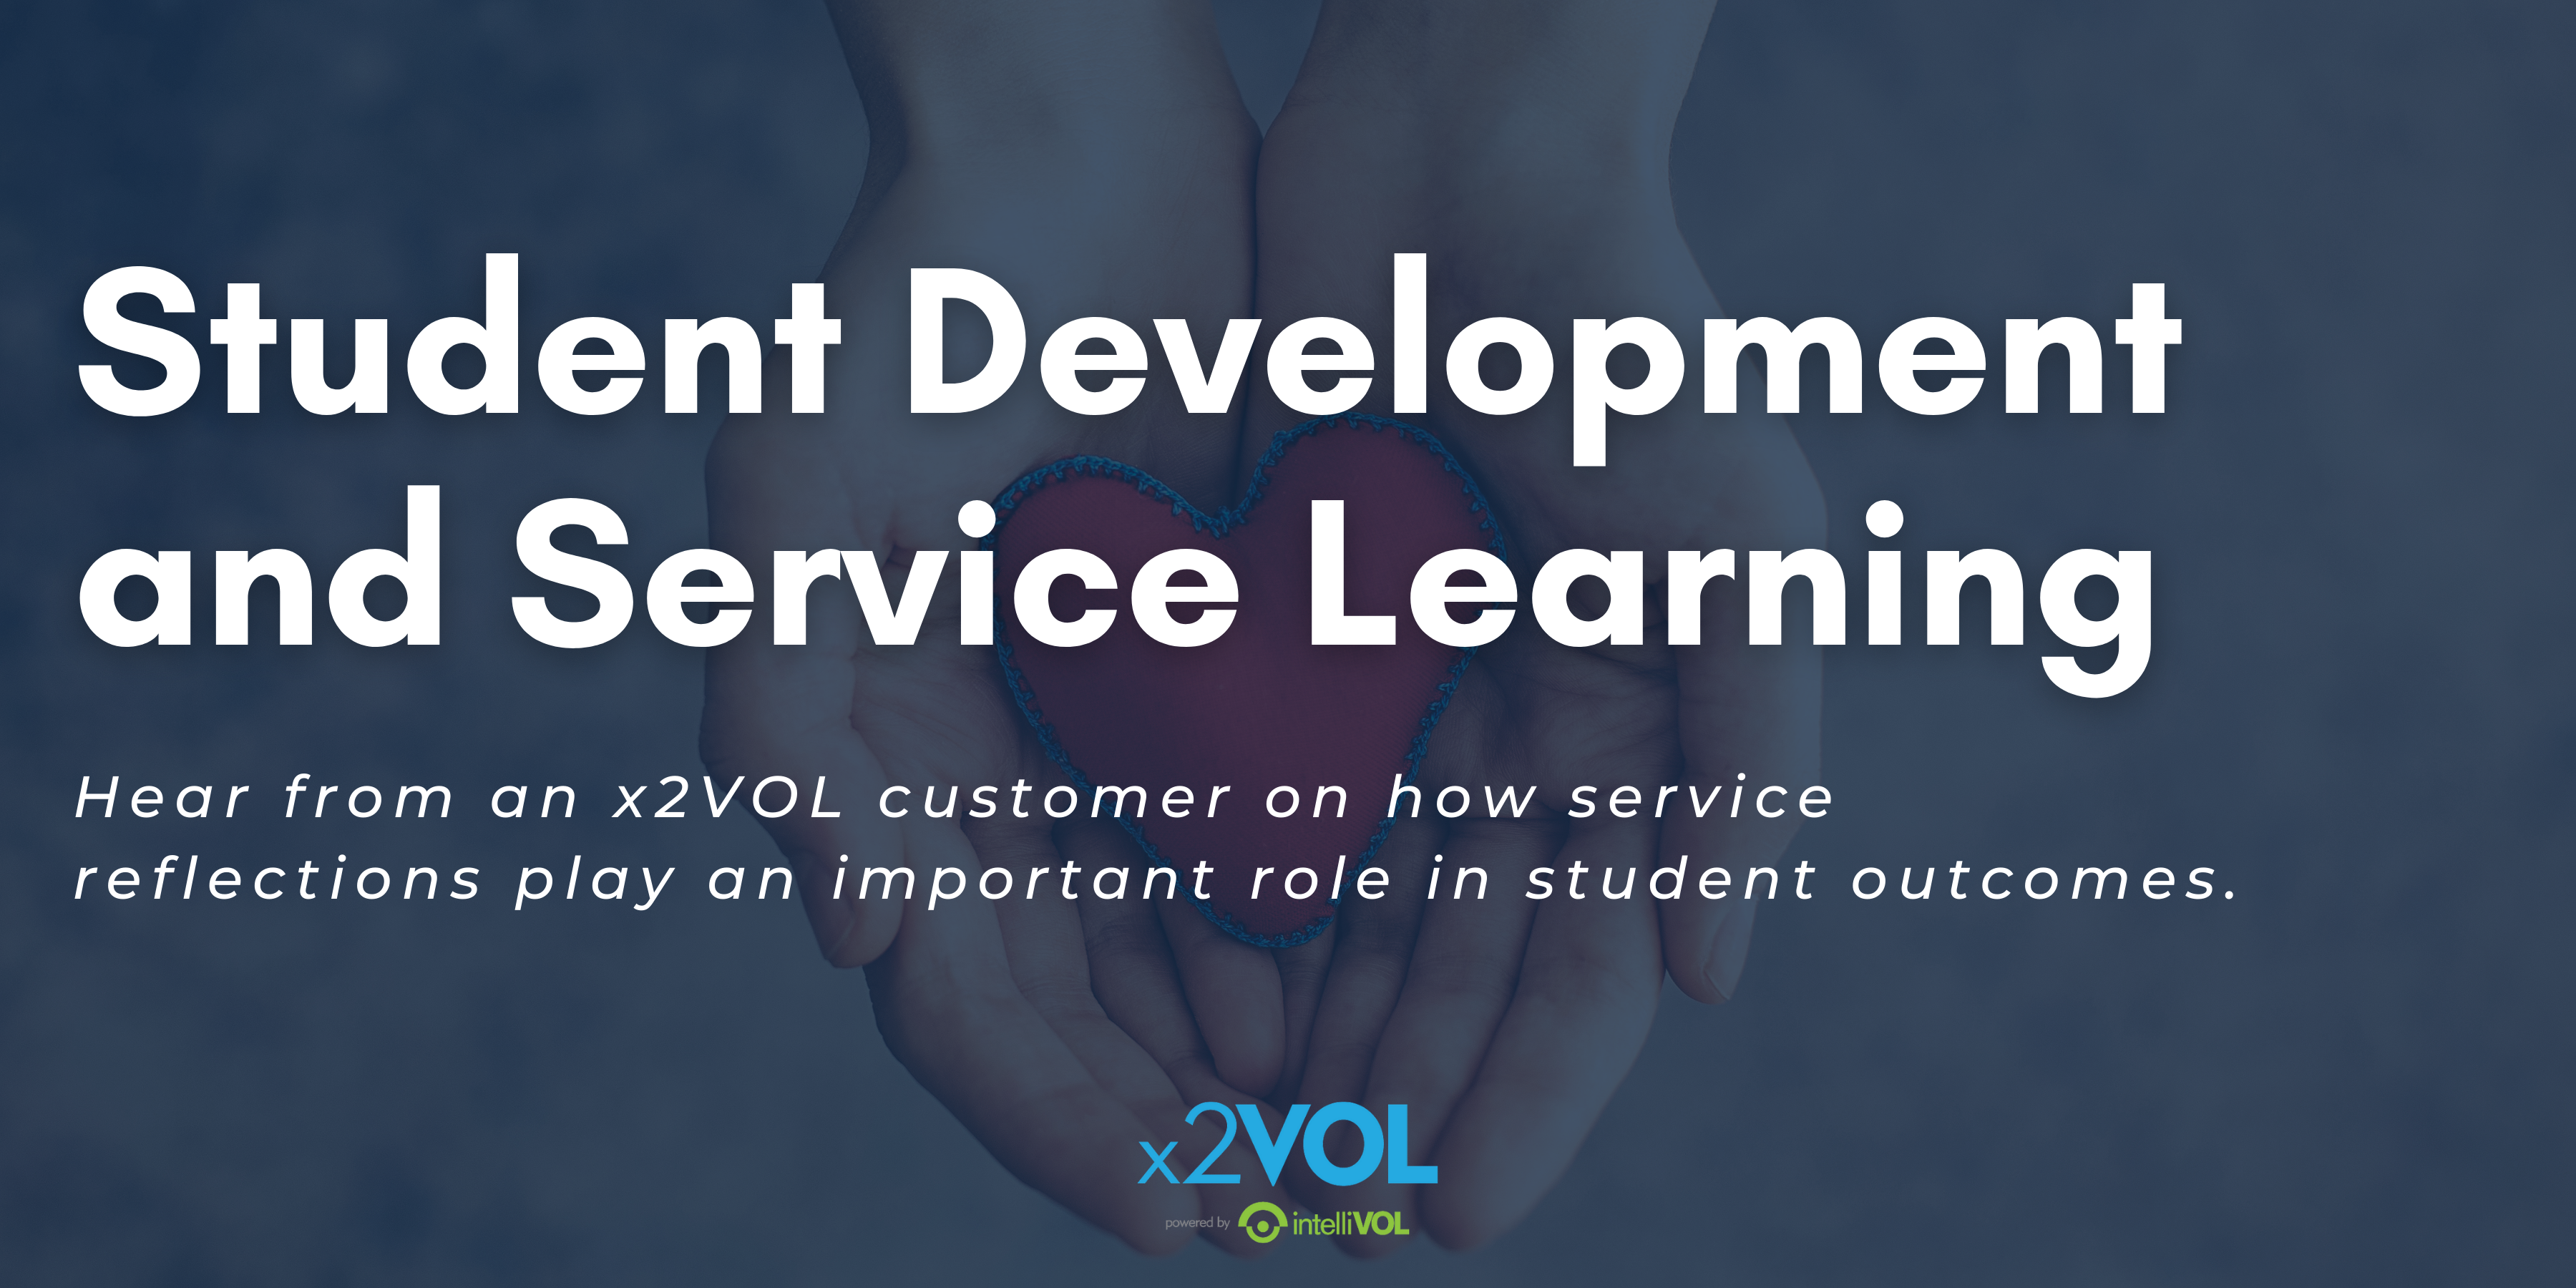 Student Development and Service Learning